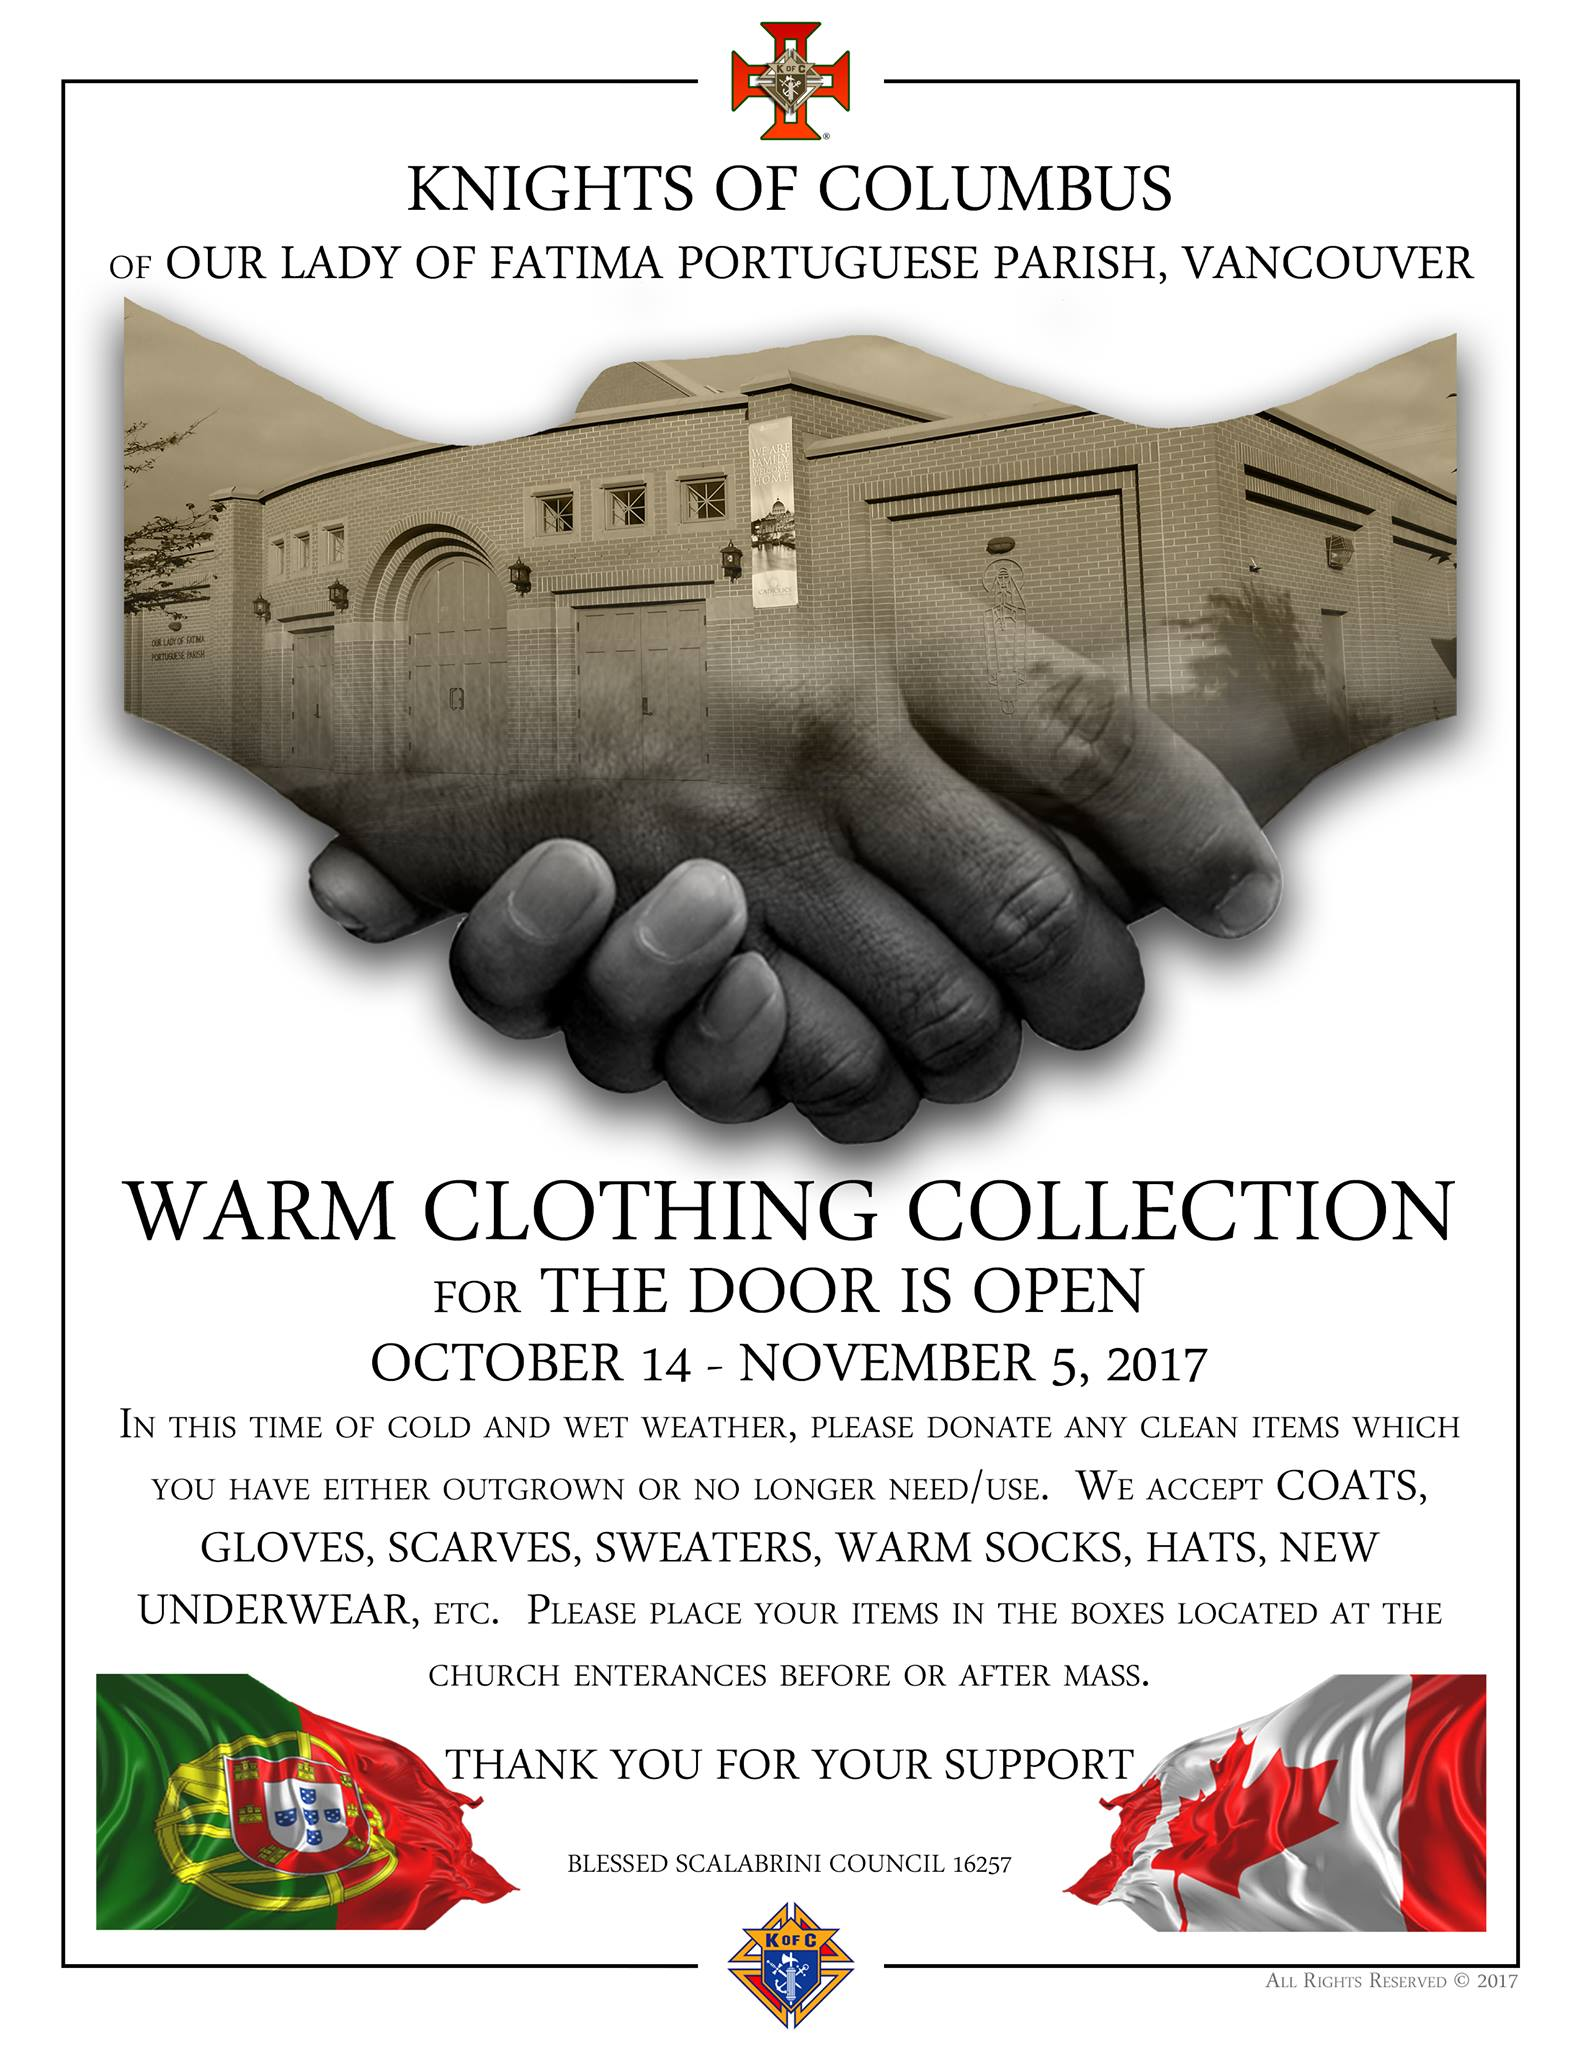 The Knights of Columbus Warm Clothing Collection